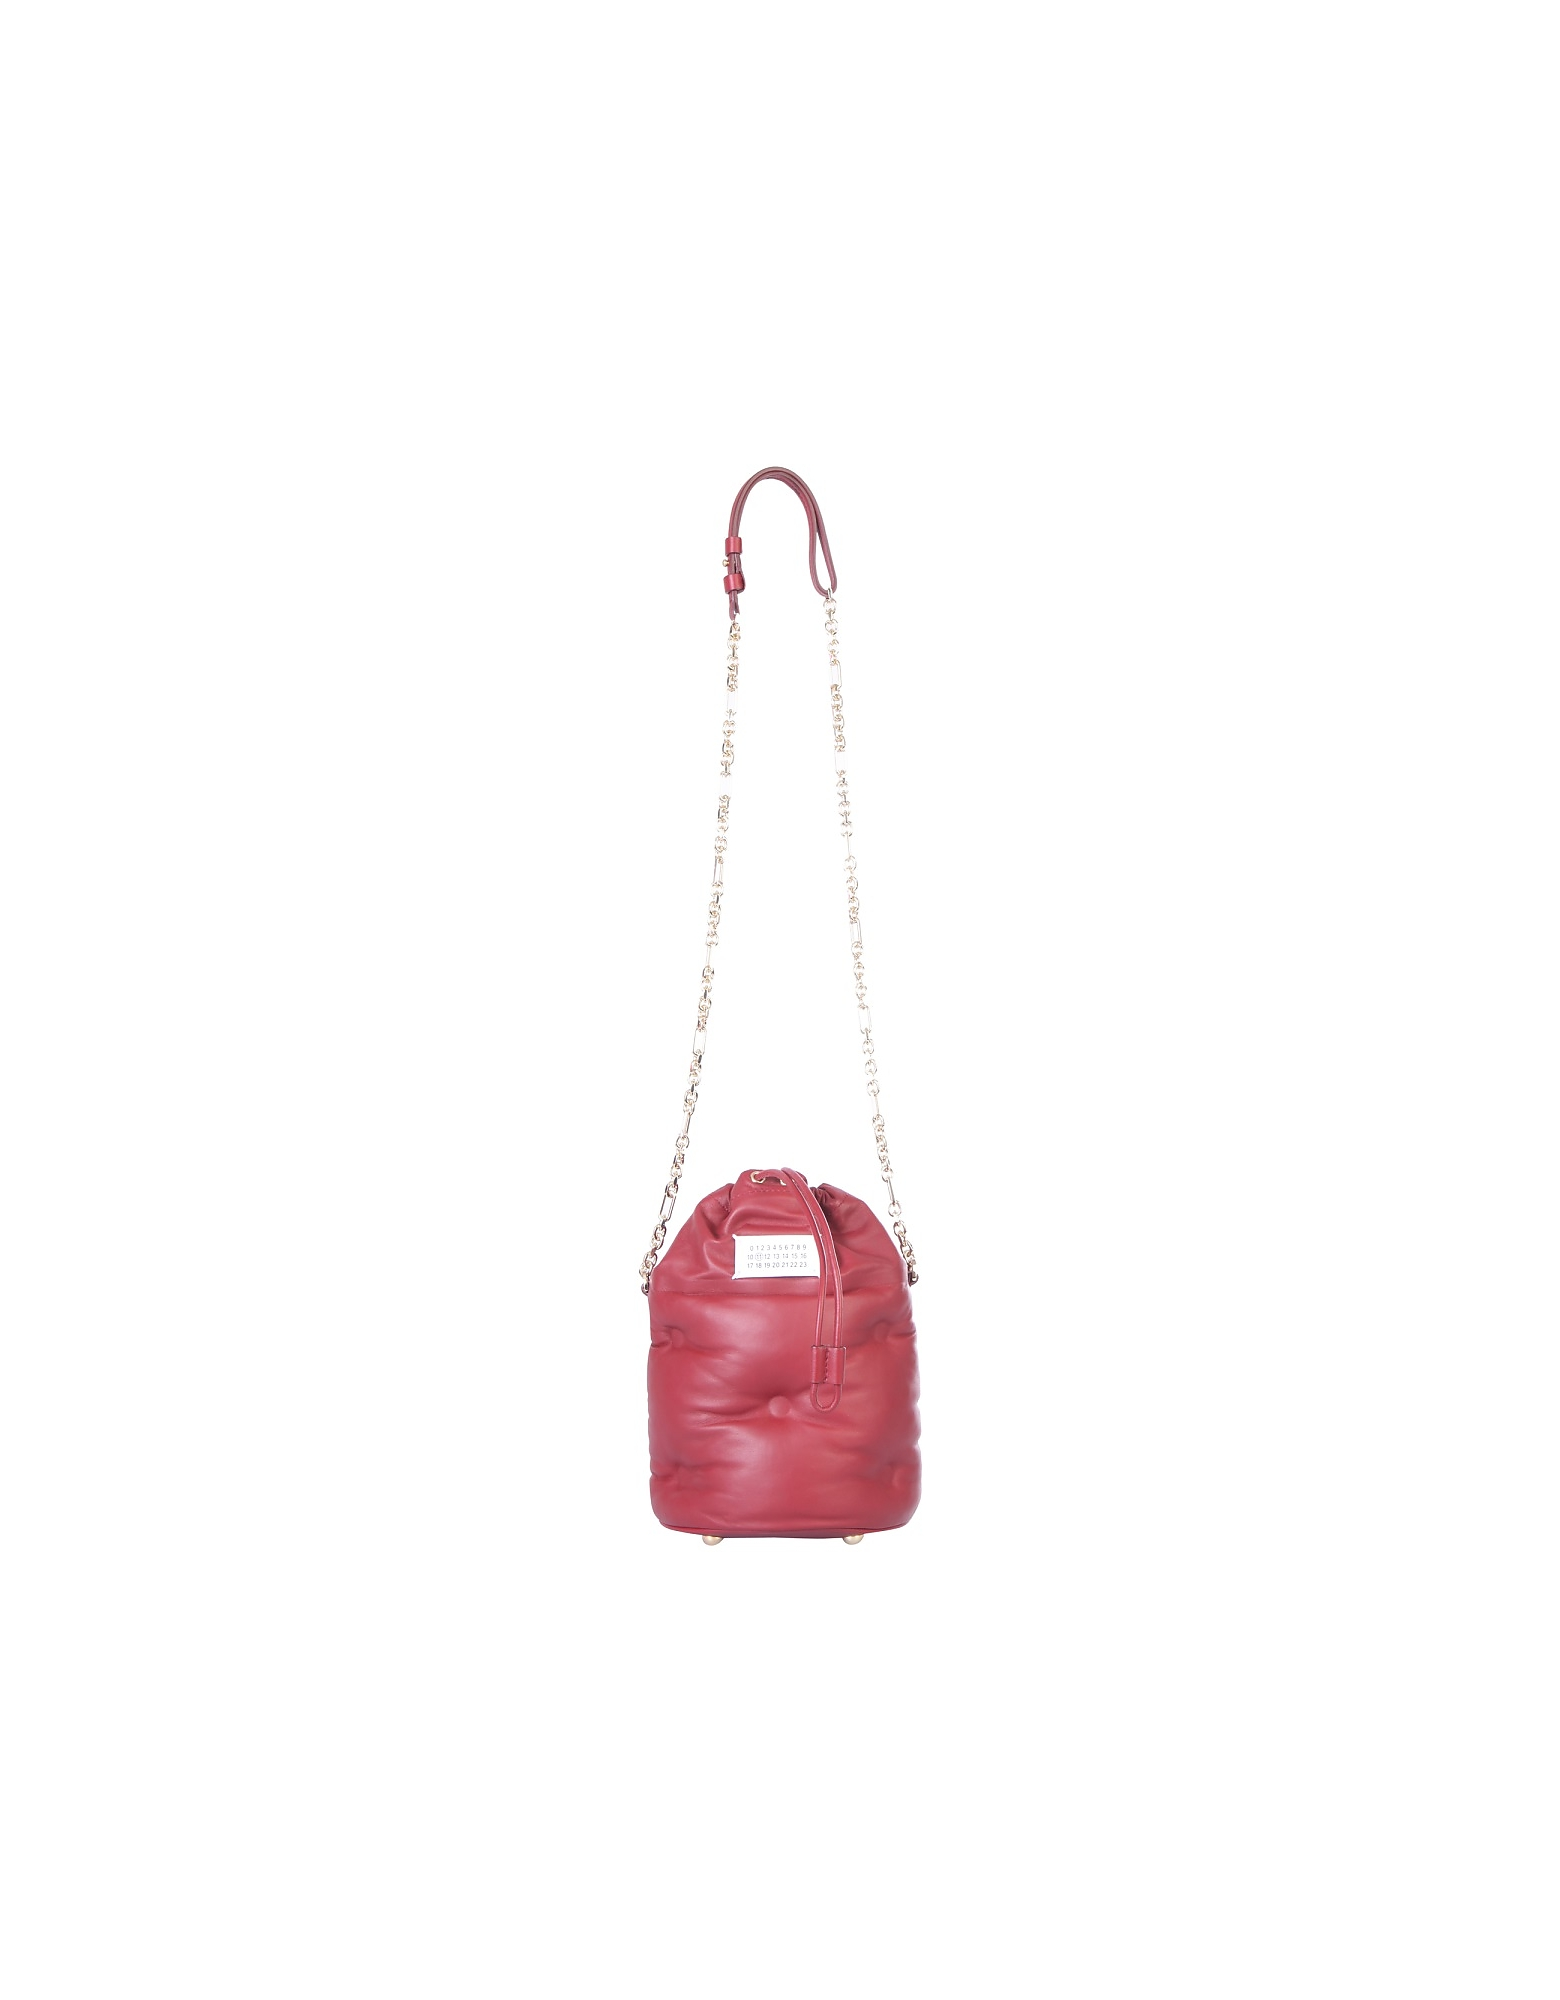 Maison Margiela Designer Handbags, Glam Slam Bucket Bag